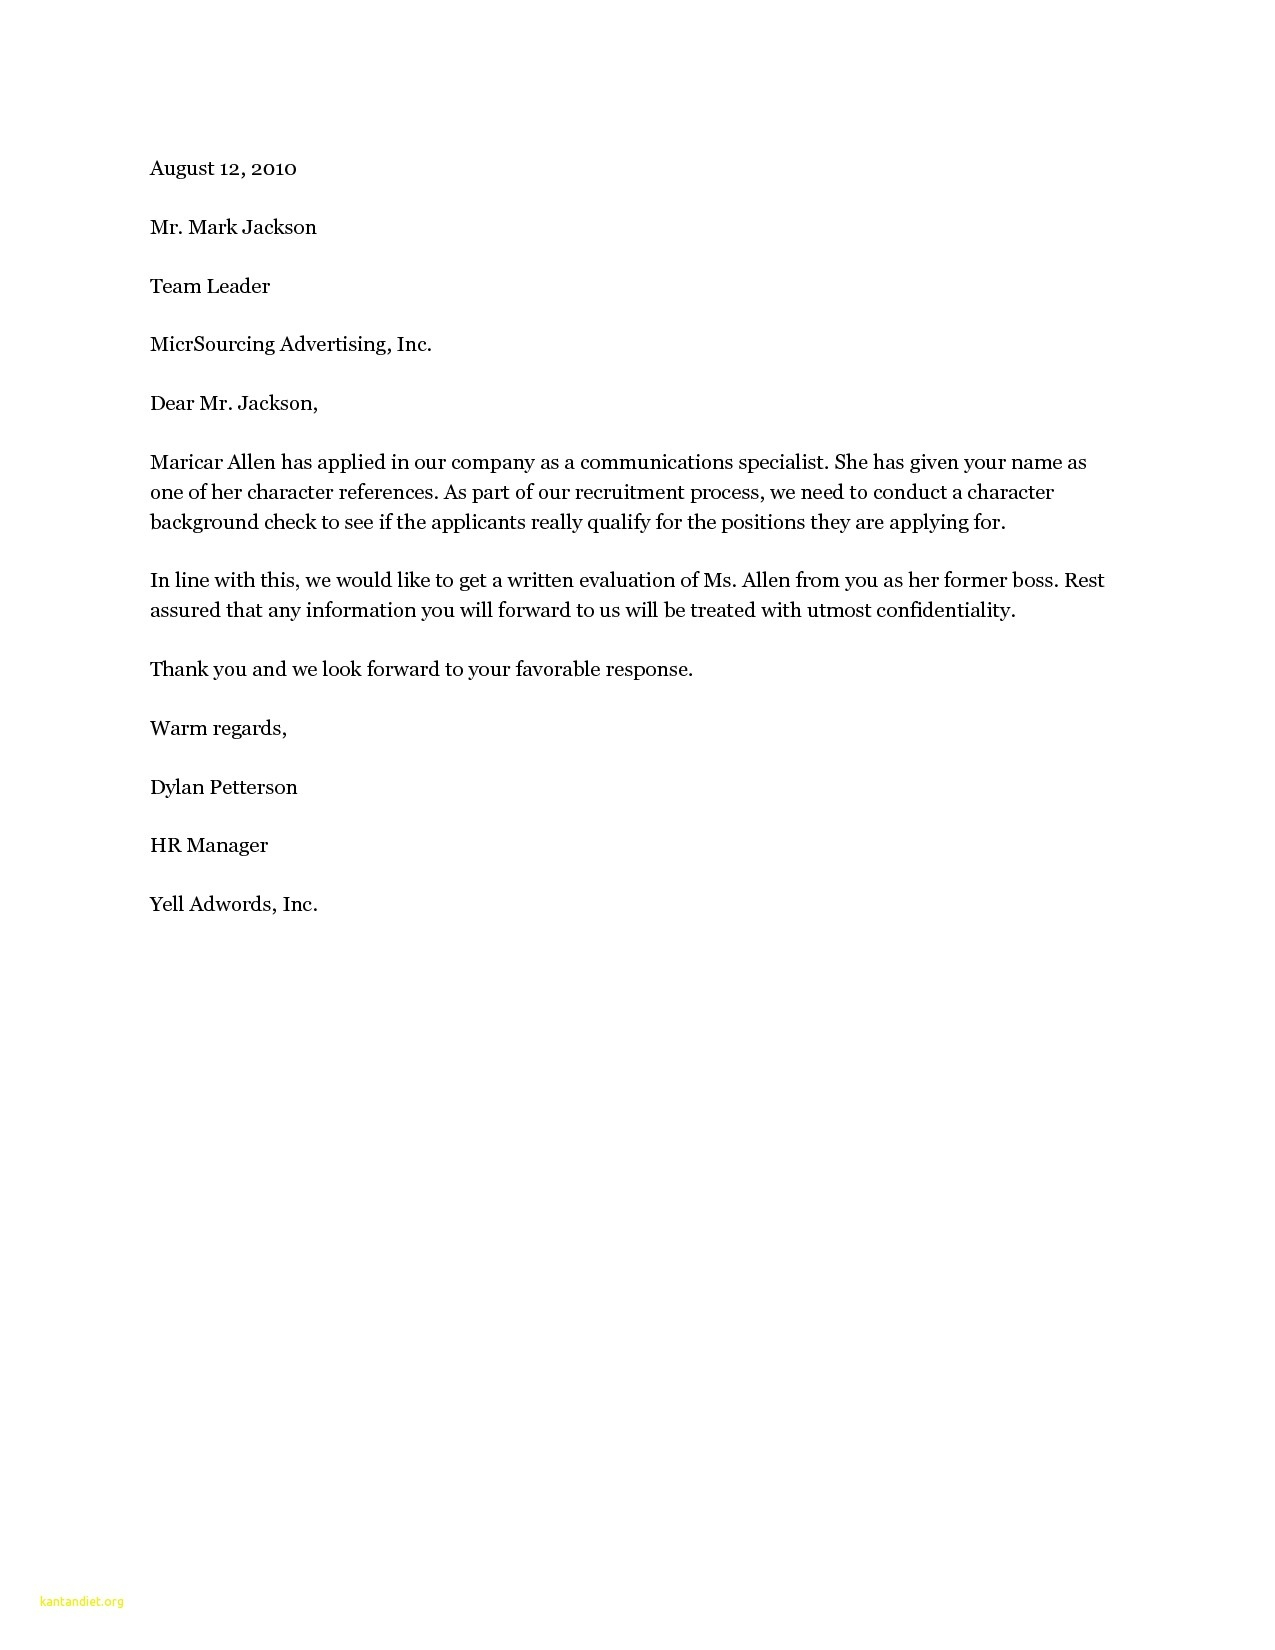 Rent Free Letter From Parents Template - Recordplayerorchestra Free Resume Template